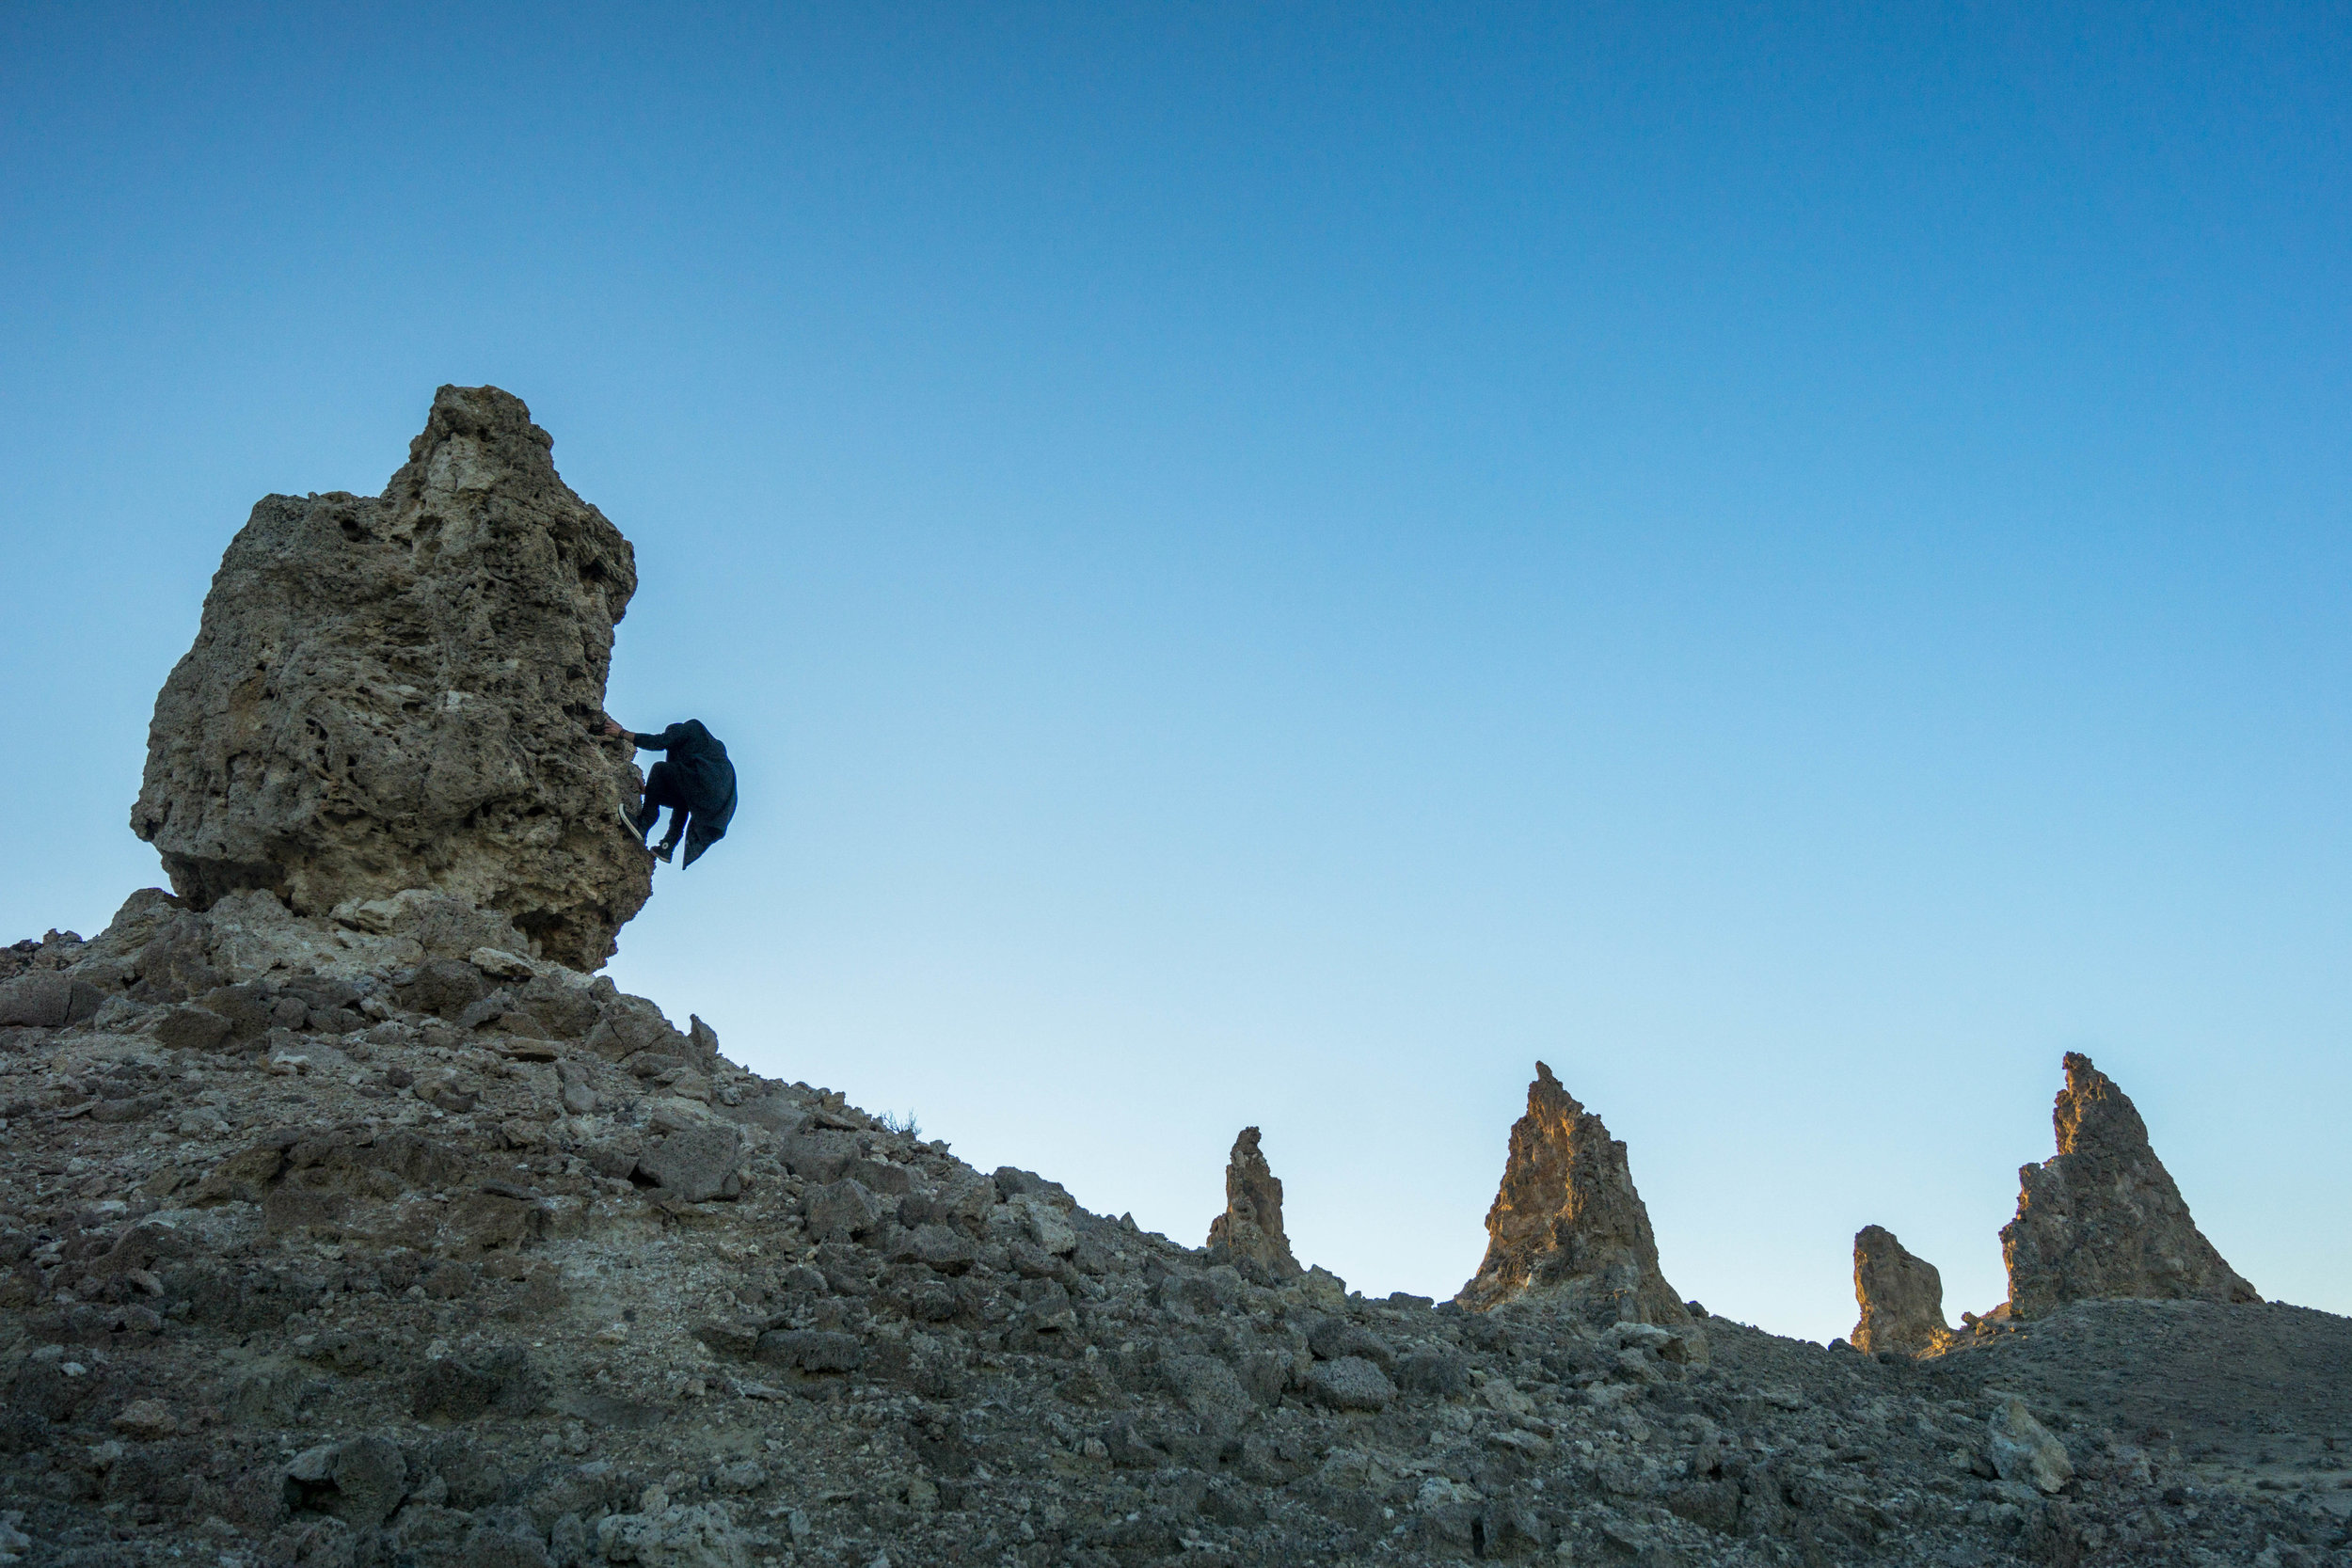 Each separate pinnacle offered up a new perspective of the otherworldly topography.